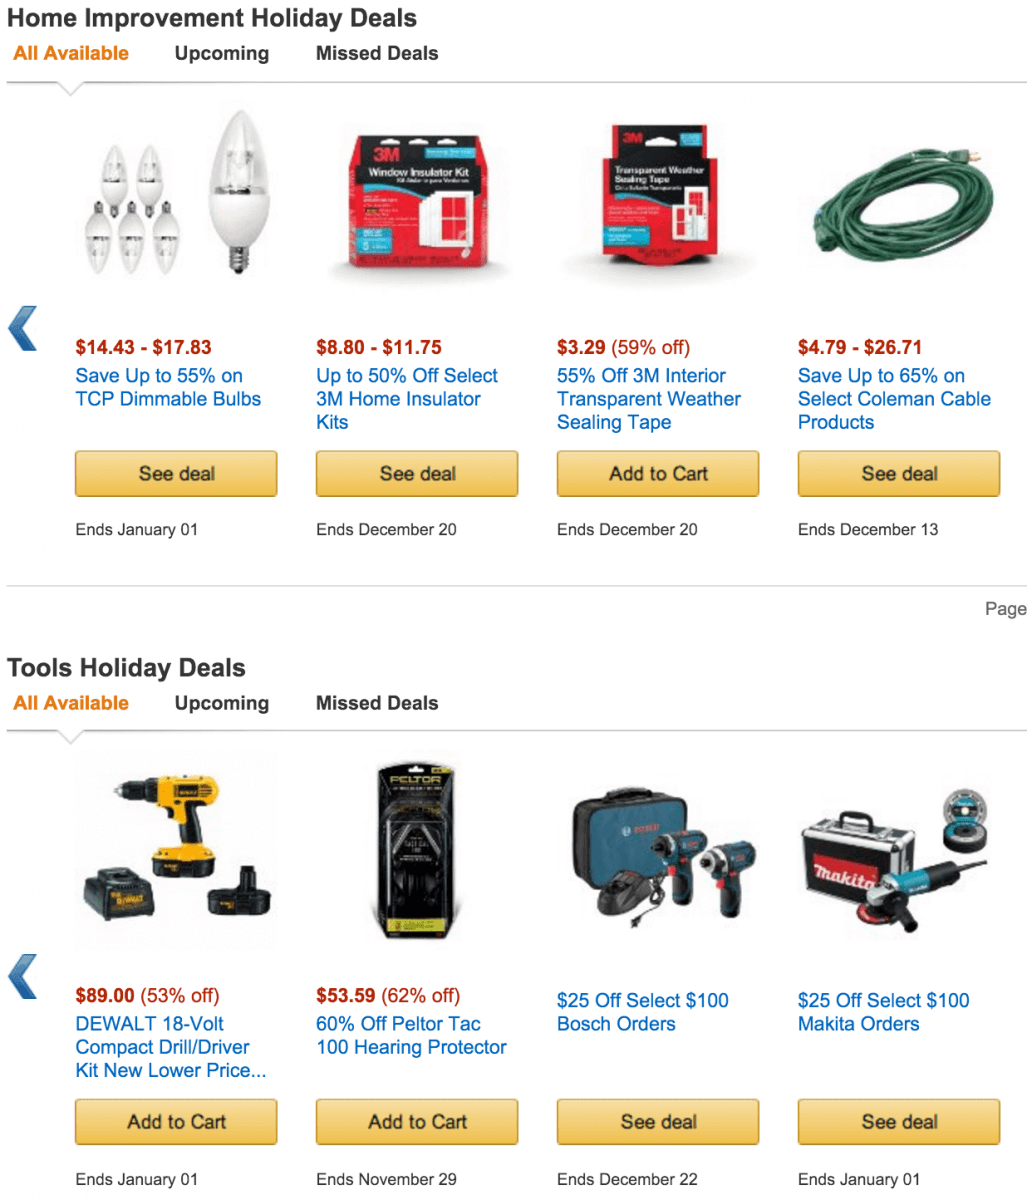 Amazon.com 2015 Black Friday deals on Tools and Home Improvement